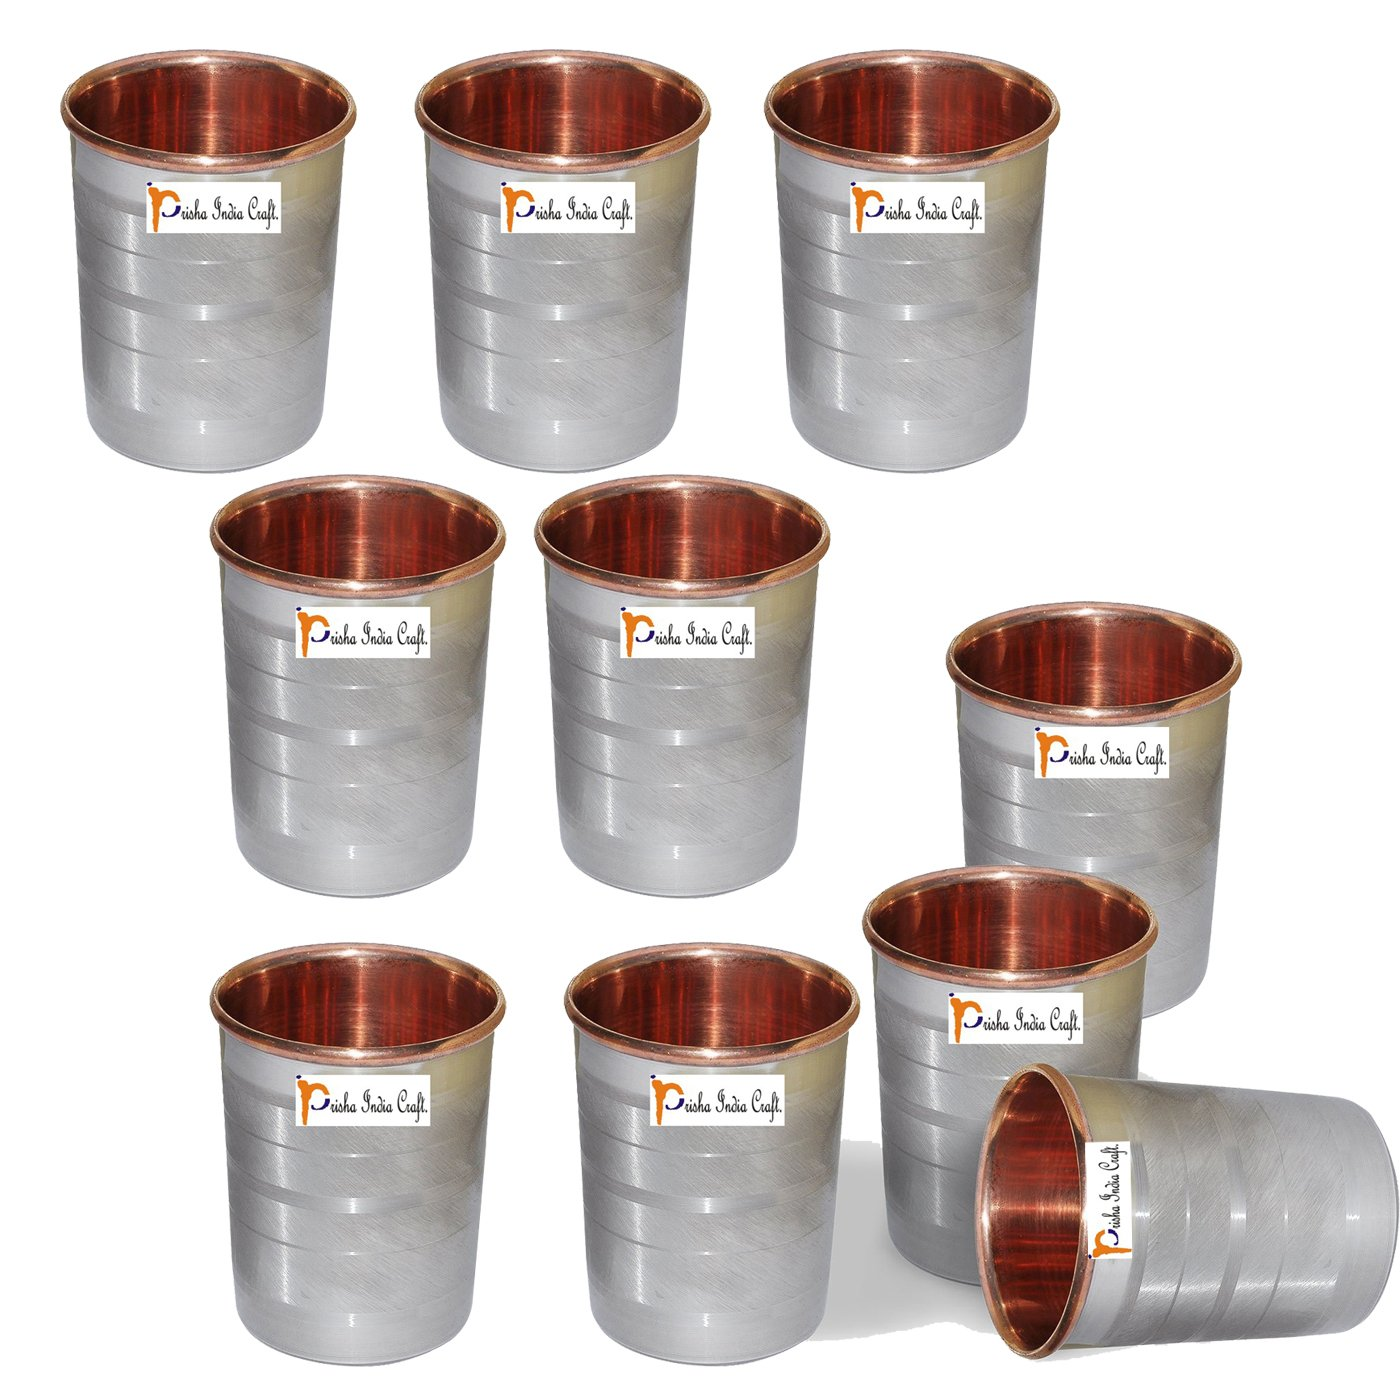 Set of 10 - Prisha India Craft ® Copper Glass Cup for Water - Handmade Water Glasses - Outside Steel Inside Copper Traveller's Copper Mug for Ayurveda Benefits - CHRISTMAS GIFT ITEM